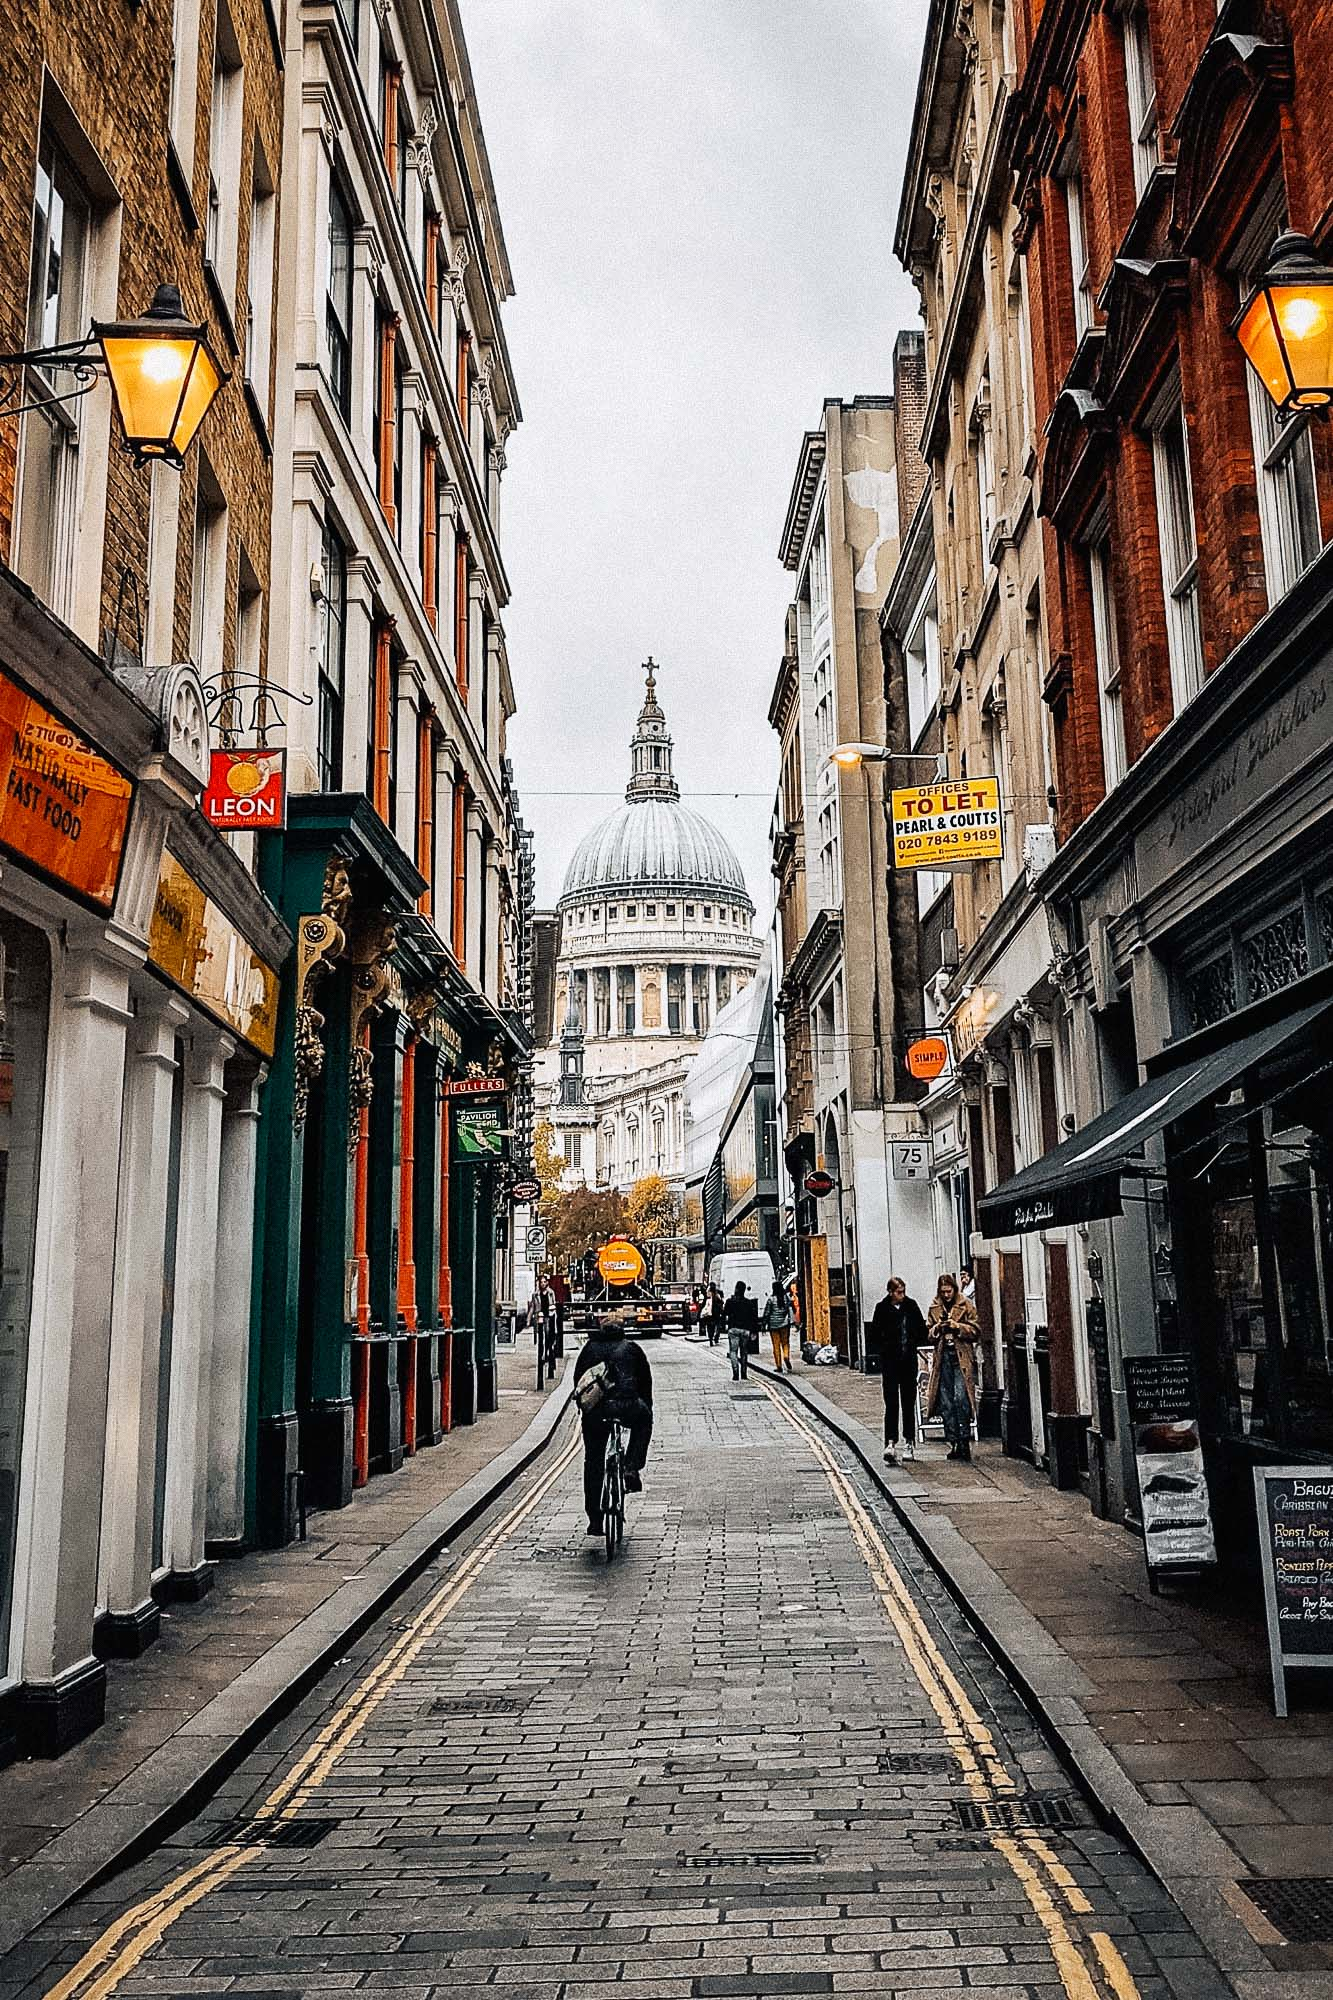 St Paul's Cathedral in the City of London, England